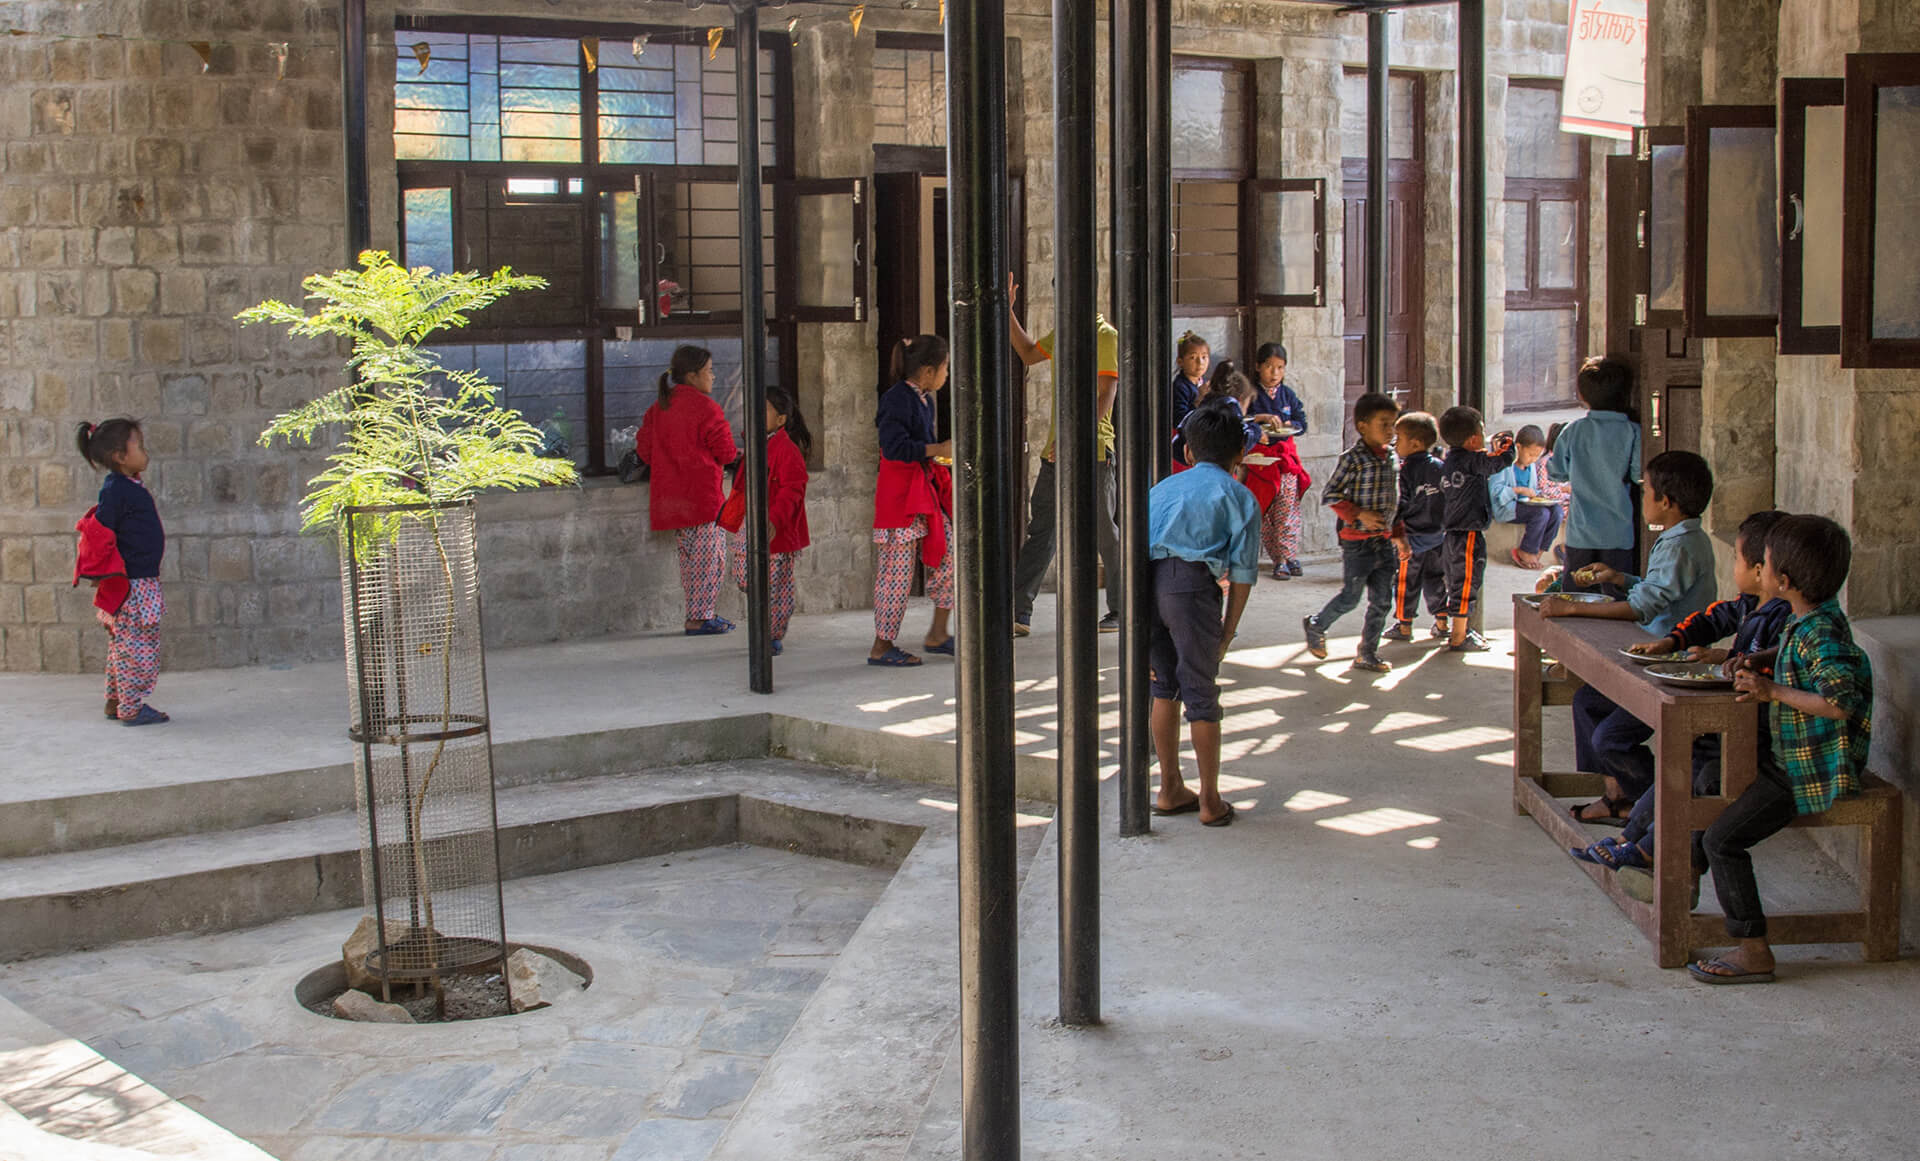 Courtyard of the Shree Janasewa School by Sustainable Mountain Architecture led by Prof. Anne Feenstra | Anne Feenstra | Design after COVID-19 | STIRworld